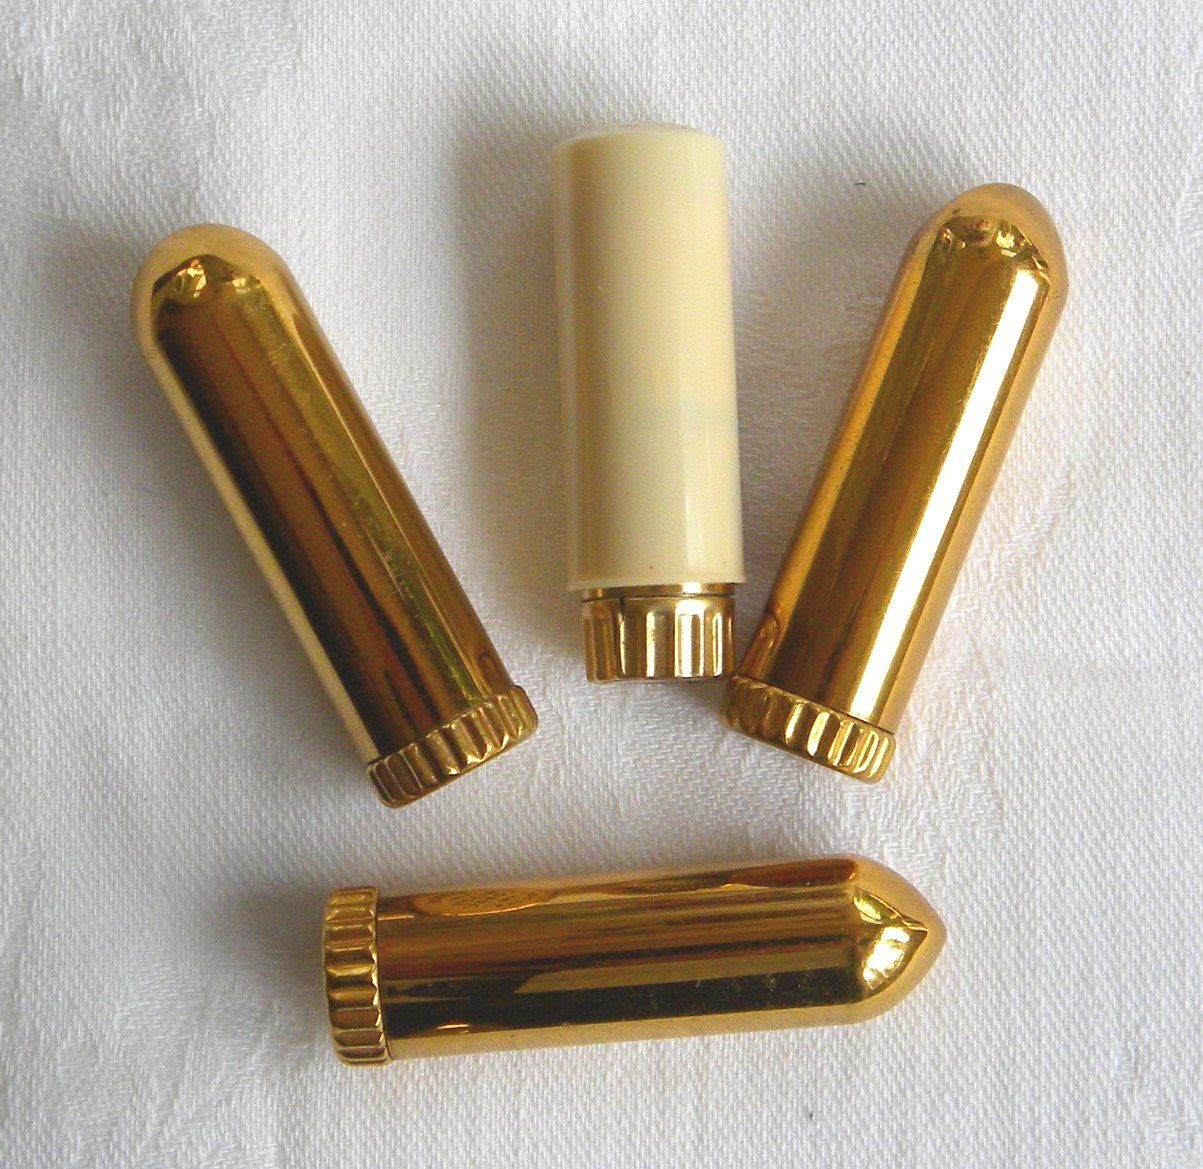 afc4a879069 Image detail for -Vintage Revlon Lipstick Tubes Holders 1 Plastic by  patternmania